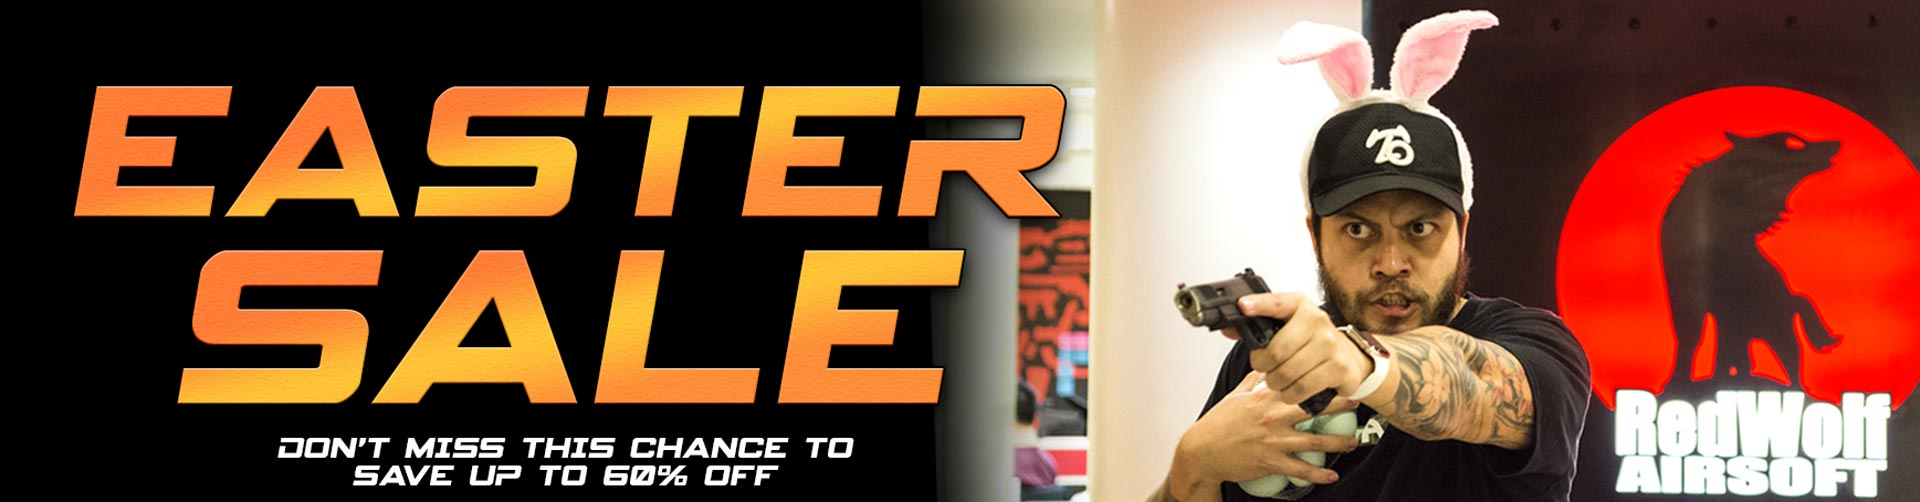 AIRSOFT EASTER SALE